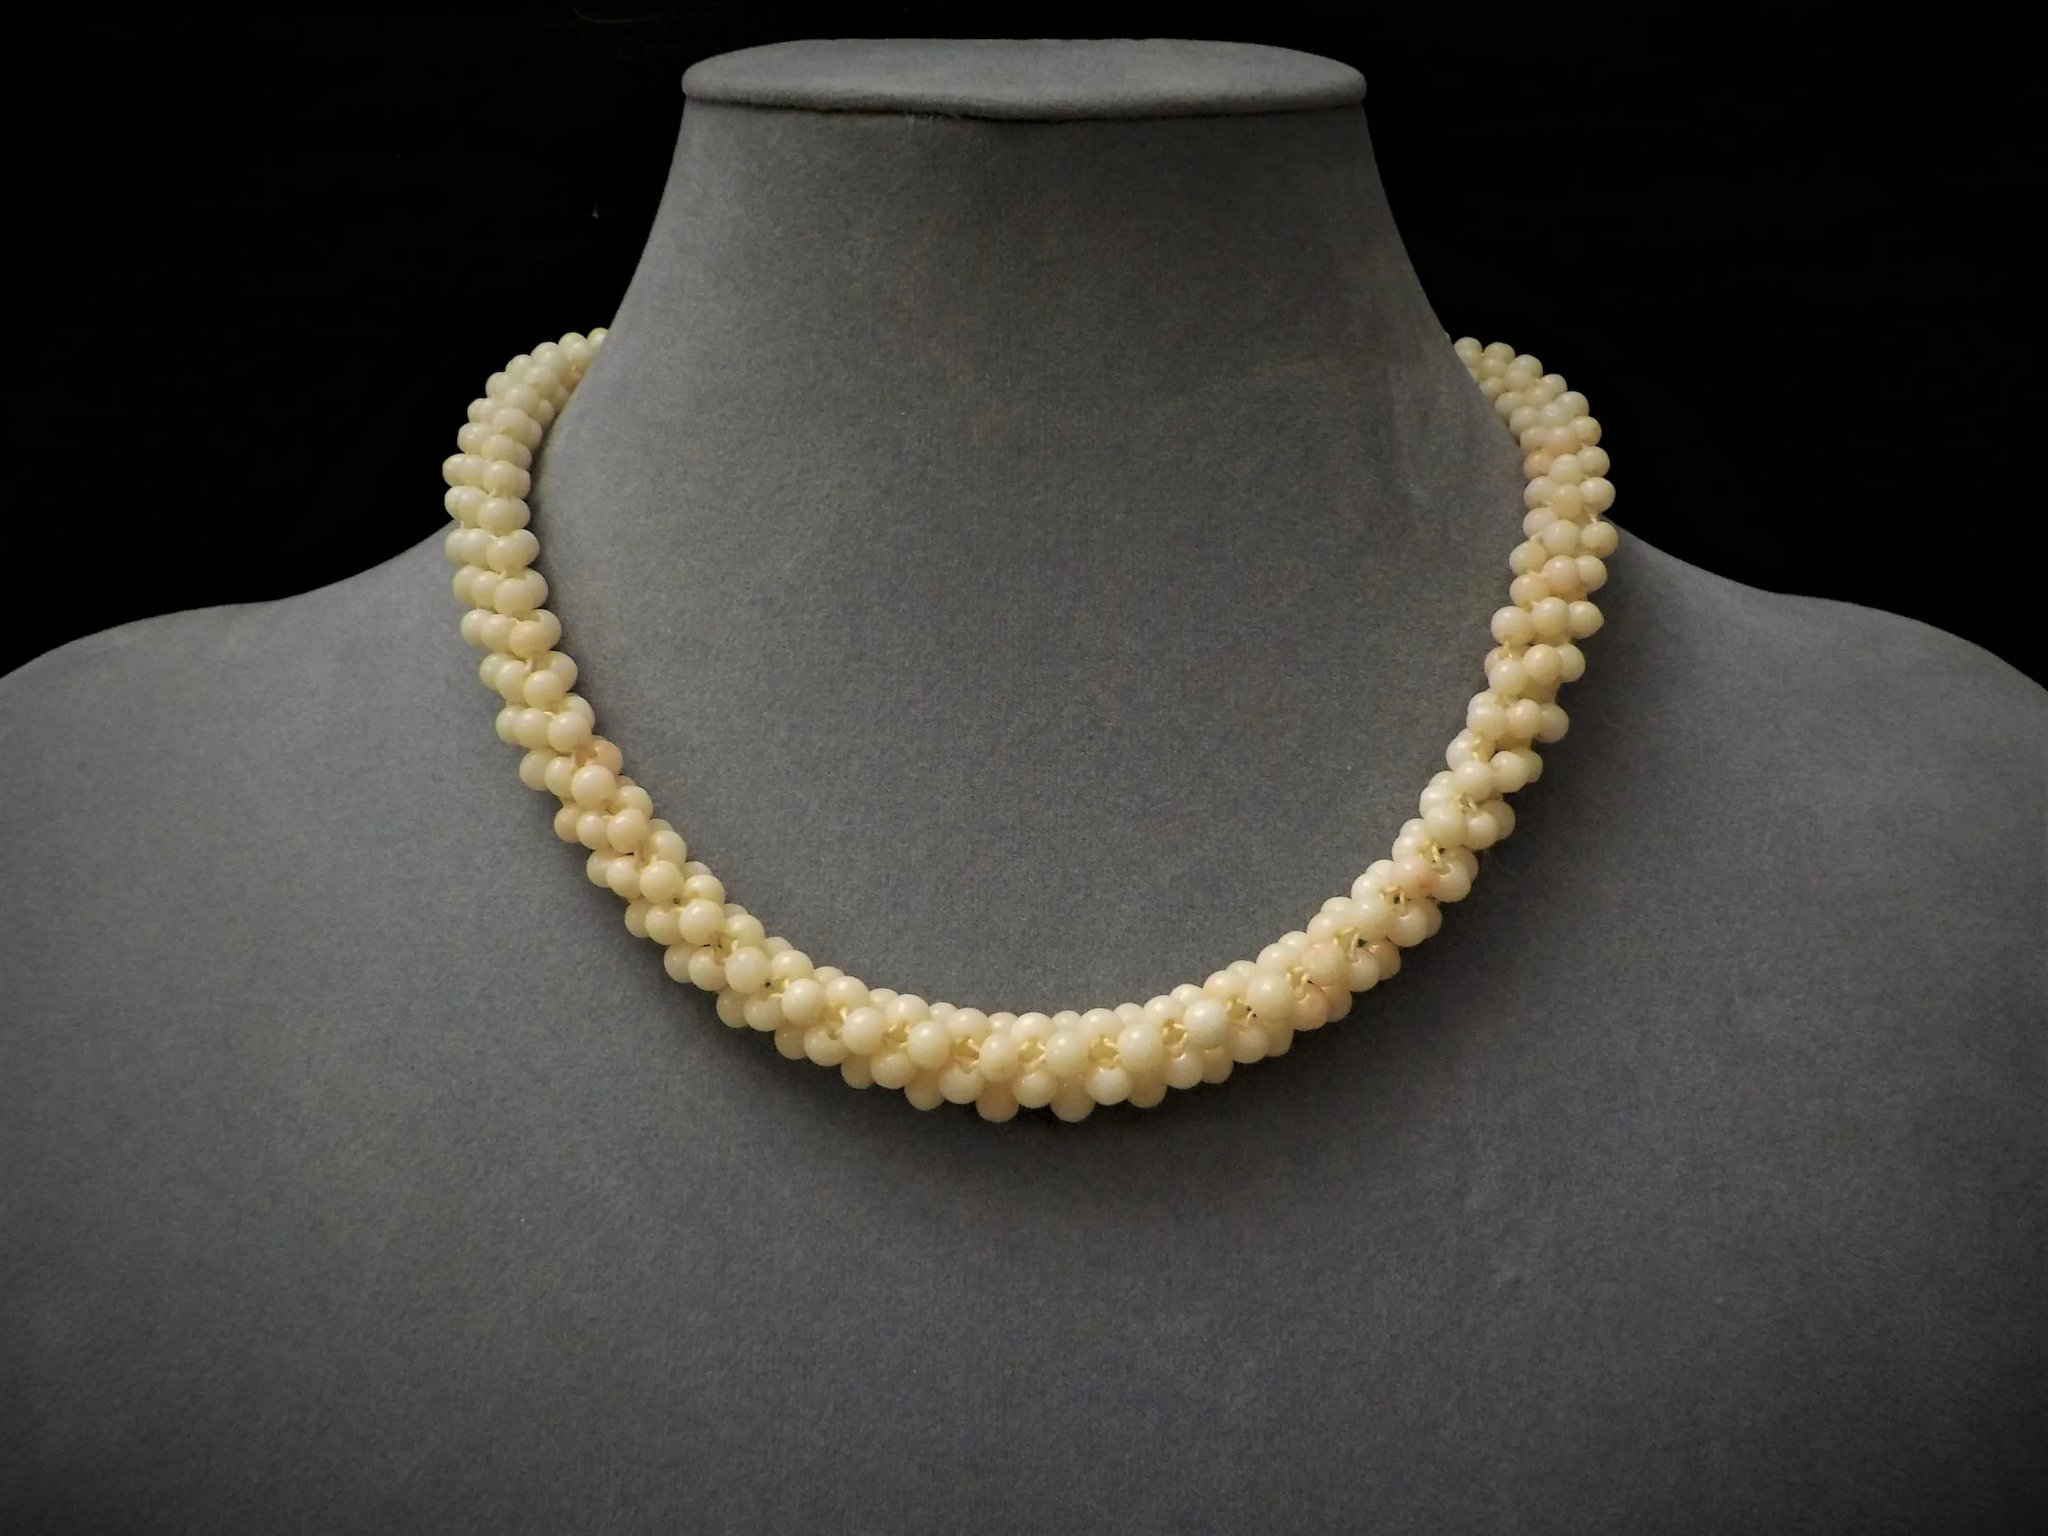 Vintage 1890 – 1940 Angel Skin Coral Woven Choker Necklace With Regard To Most Current Woven Fabric Choker Slider Necklaces (View 14 of 25)